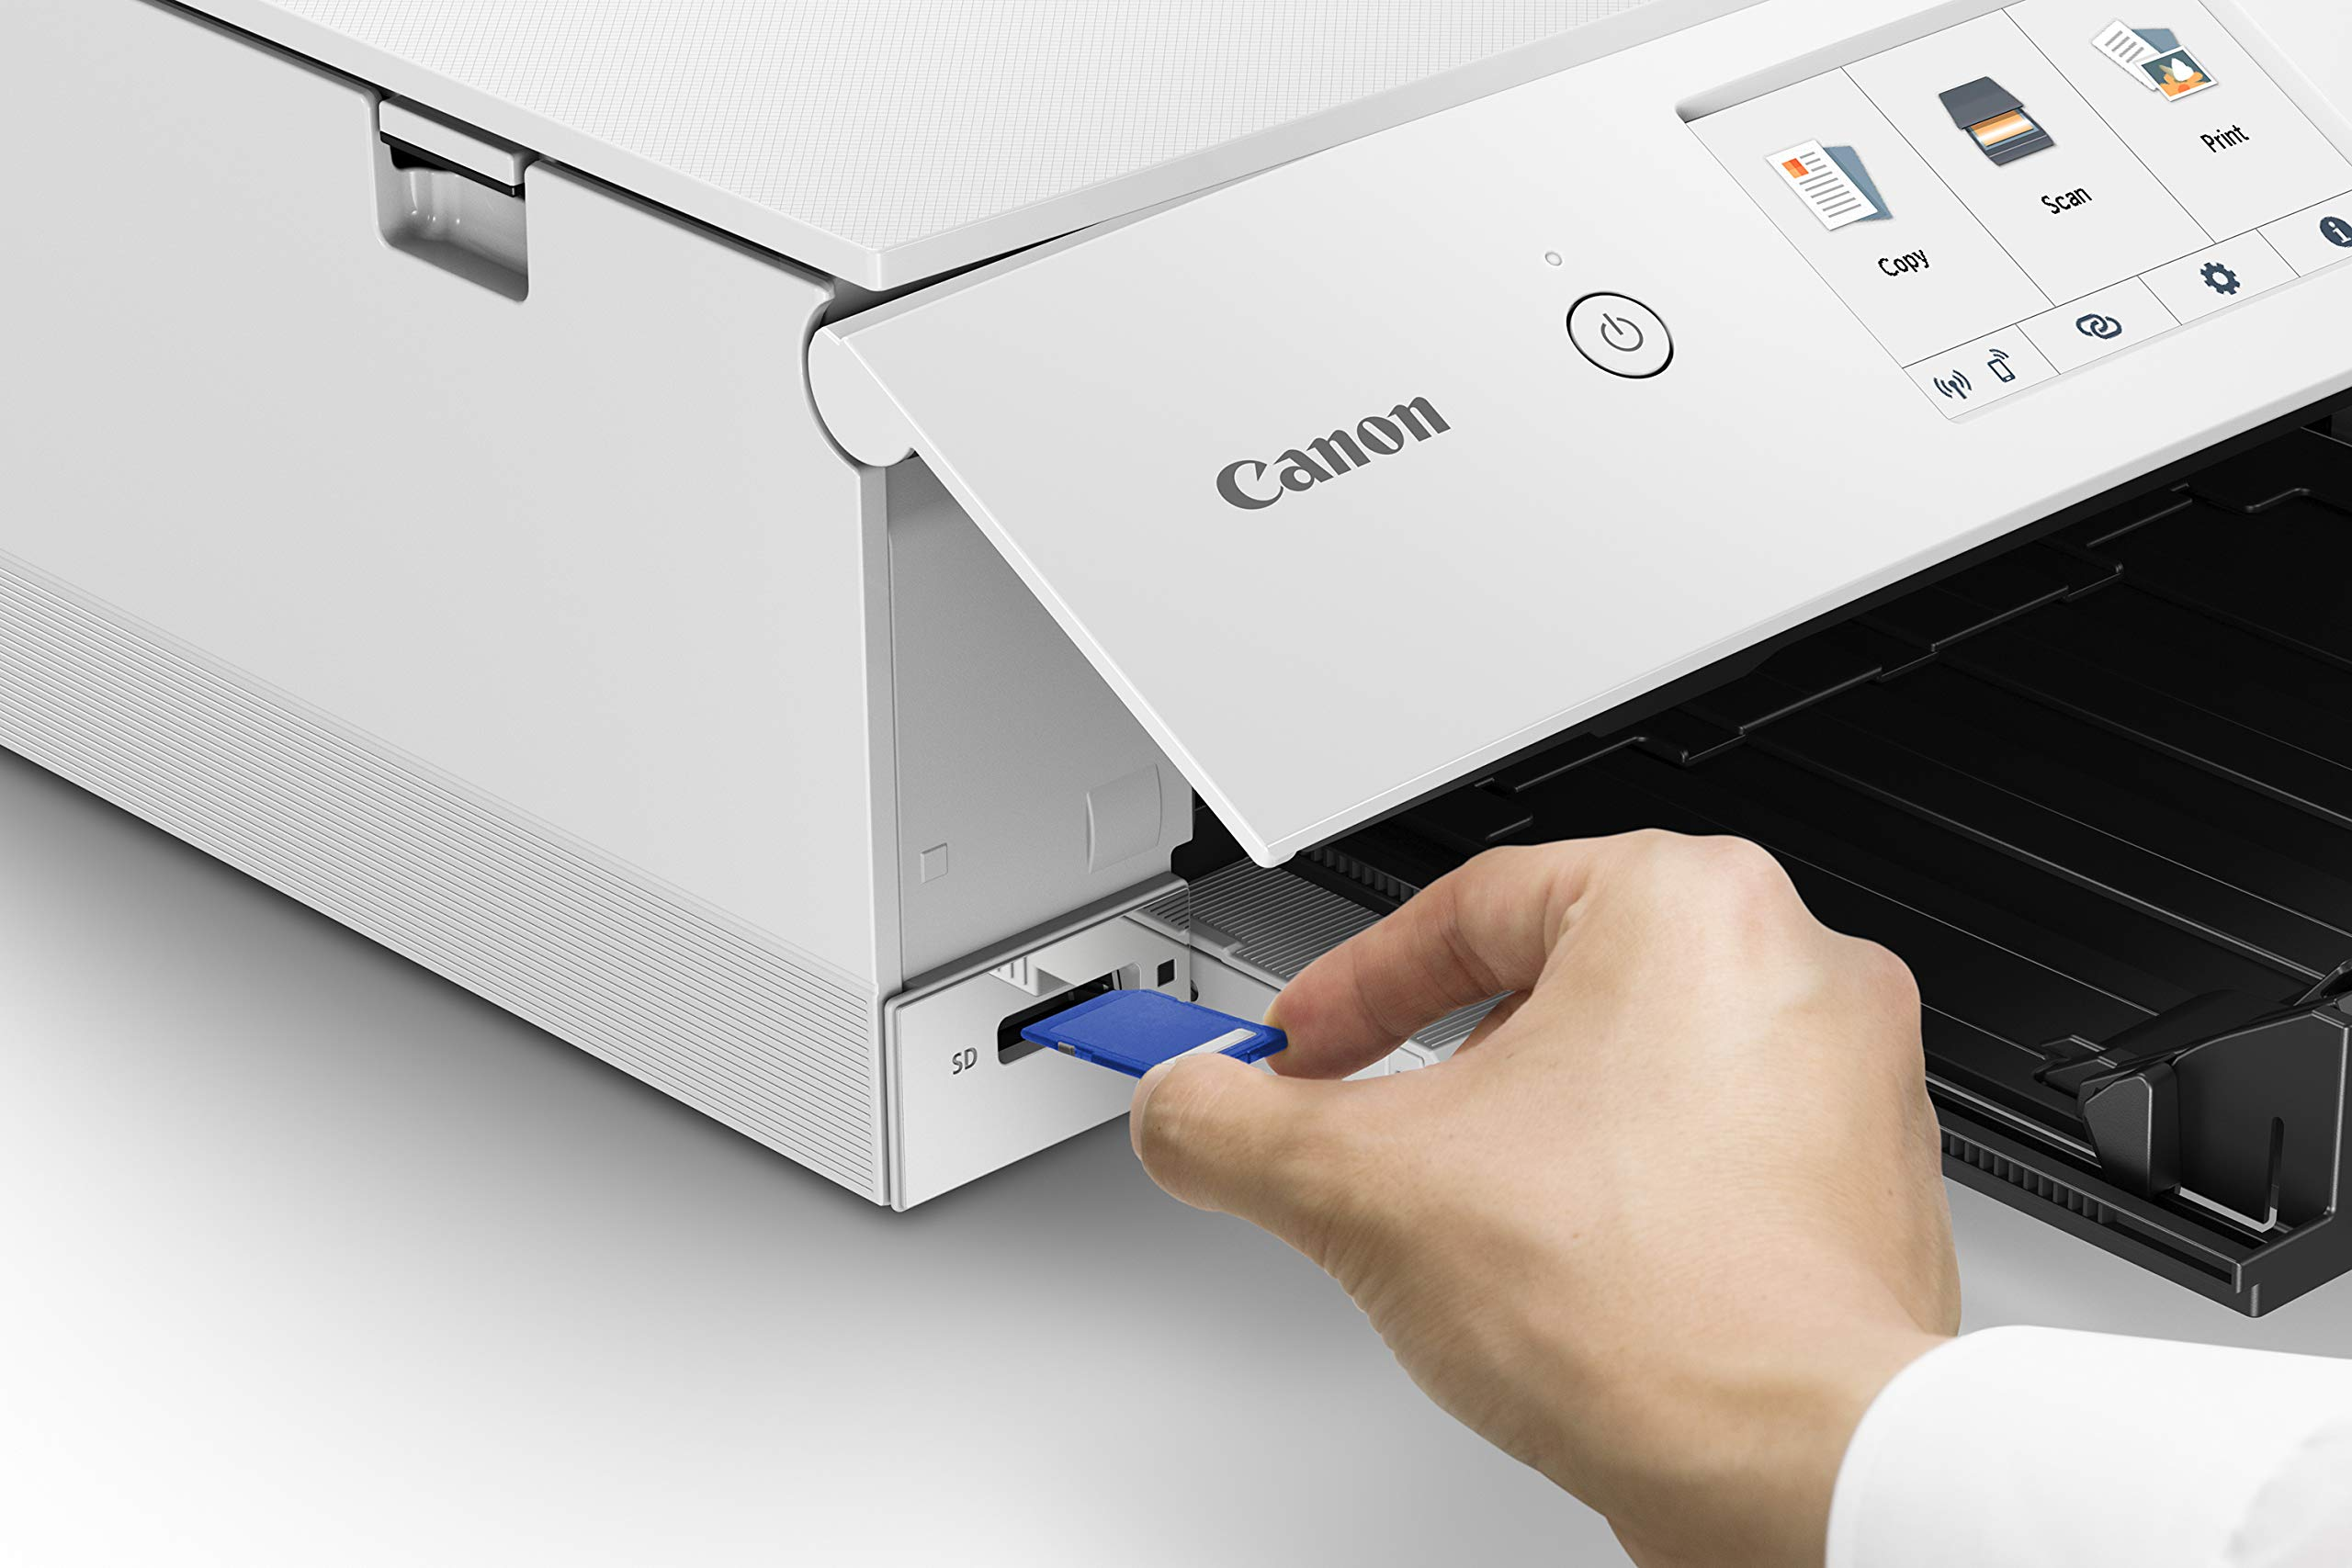 Canon TS8220 Wireless All in One Photo Printer with Scannier and Copier, Mobile Printing, White by Canon (Image #6)